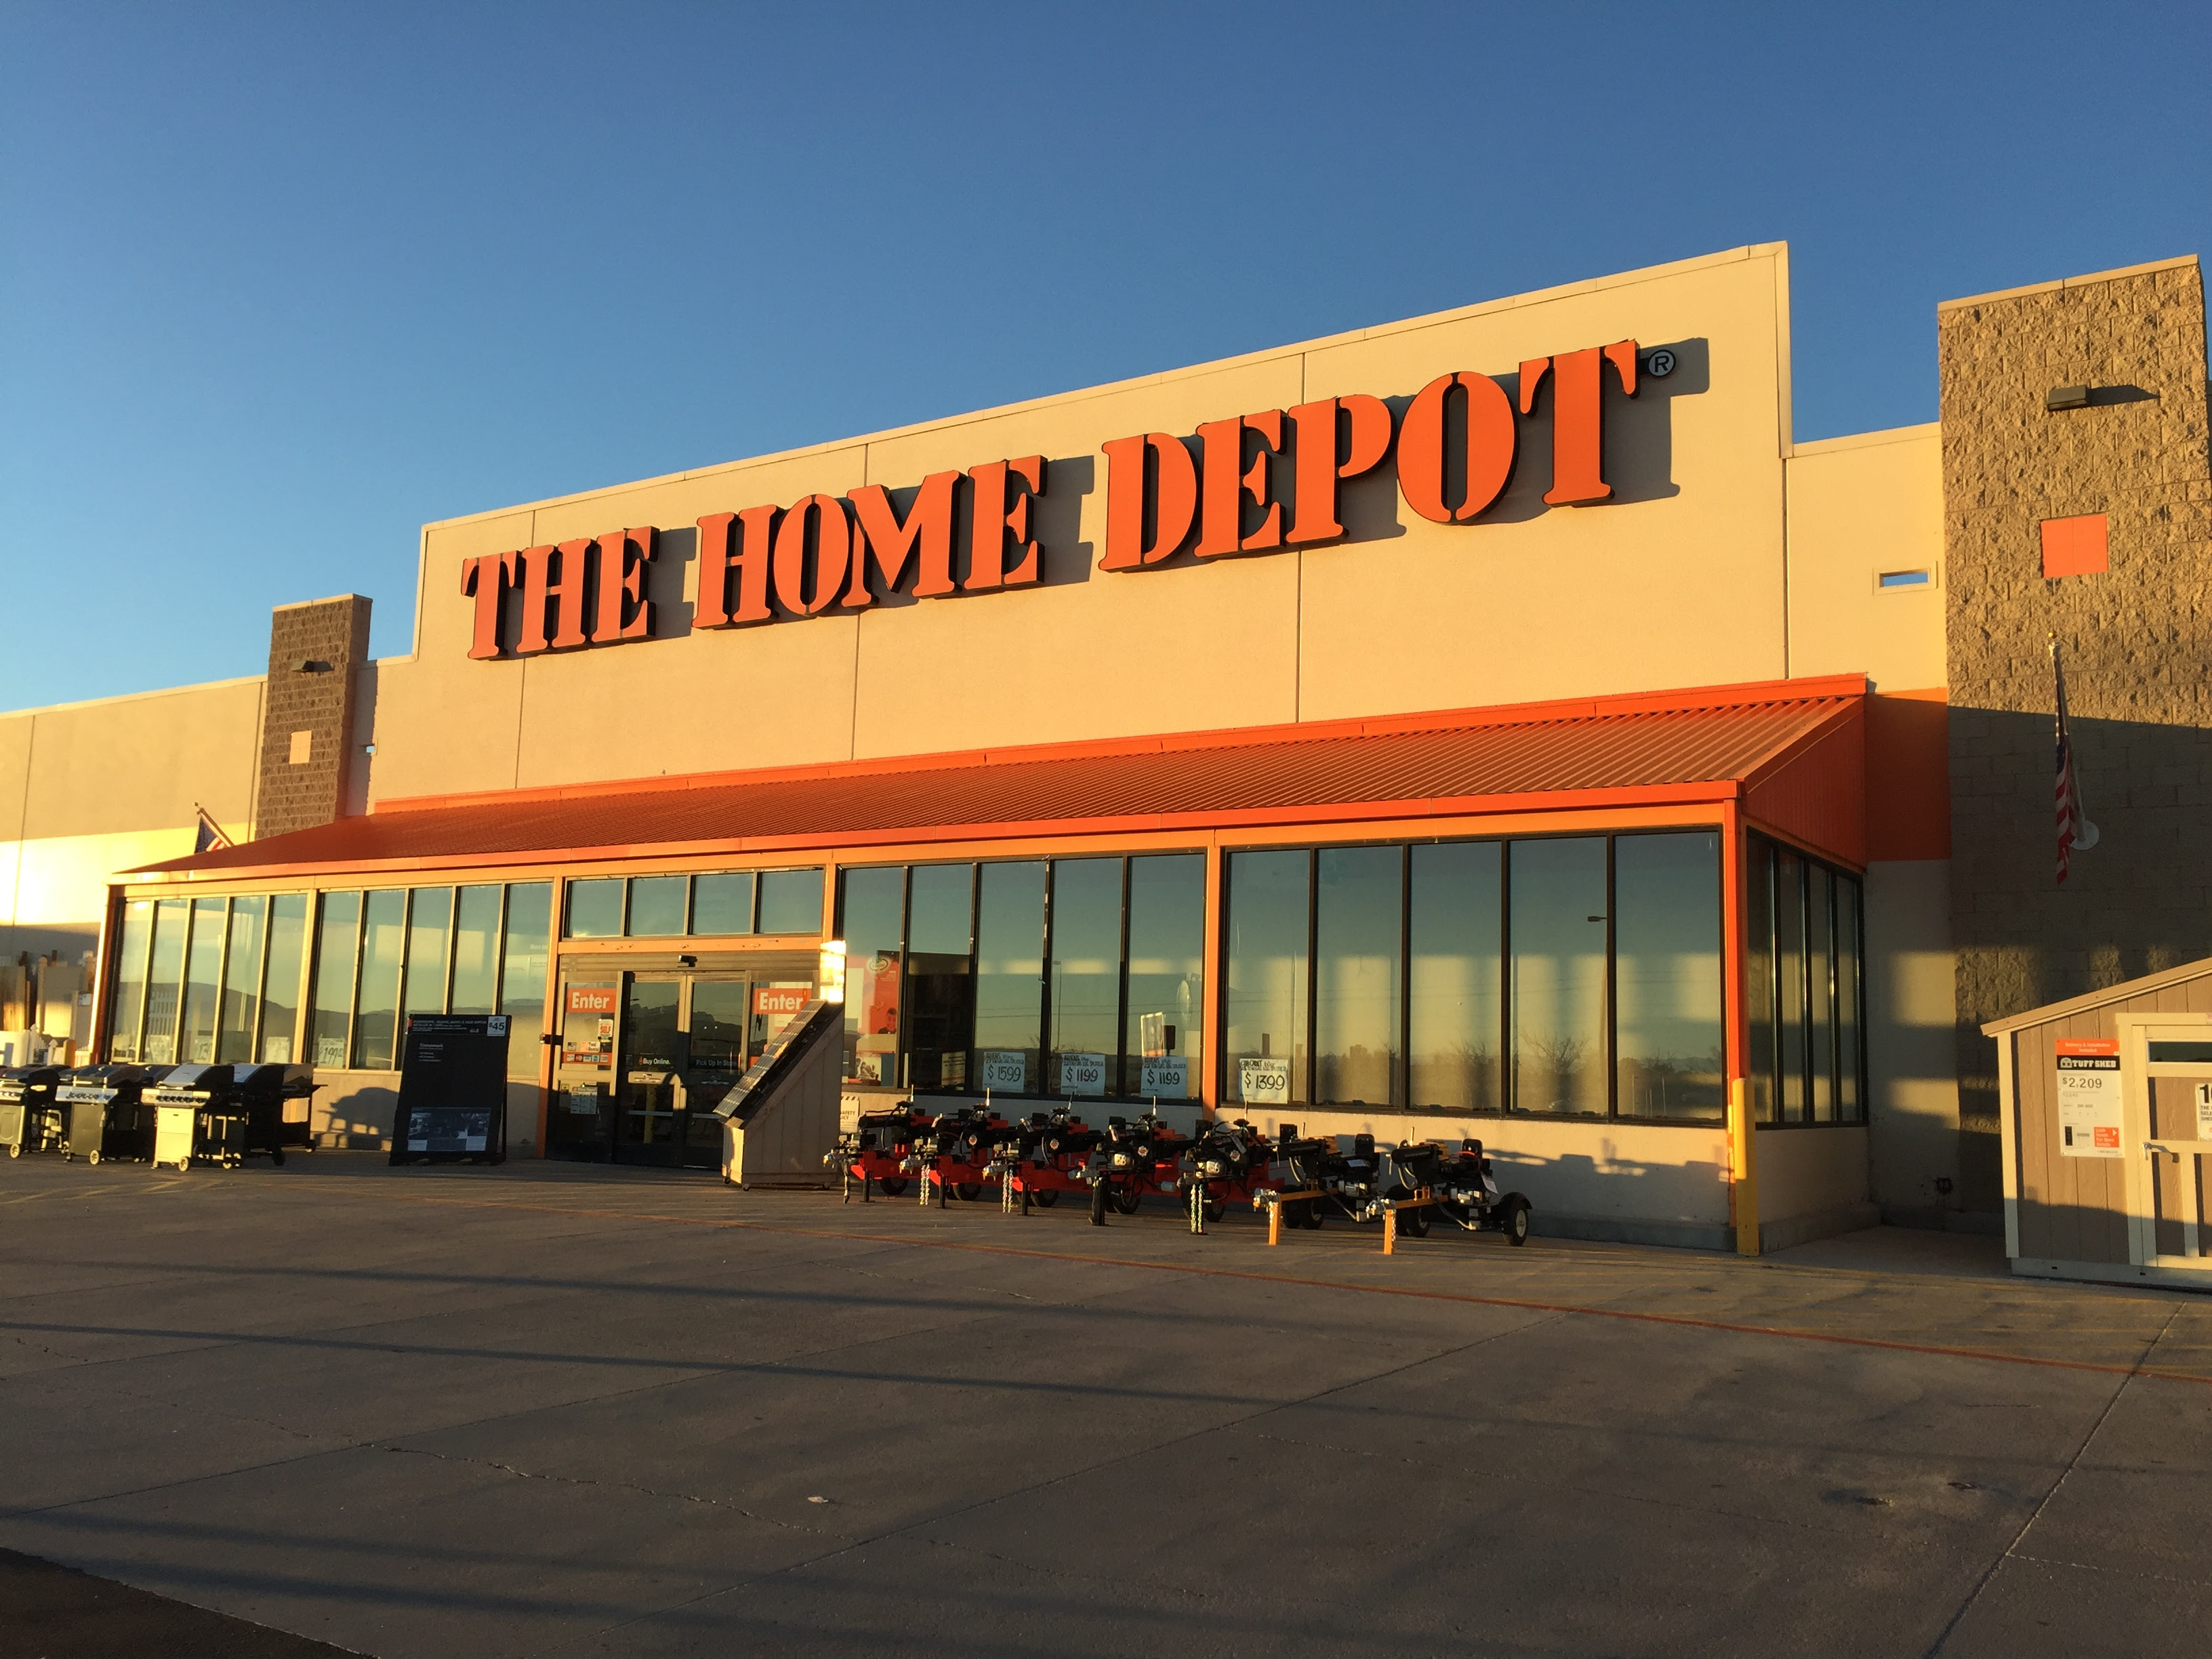 The Home Depot 7700 US 550 NE Rio Rancho, NM Home Depot - MapQuest